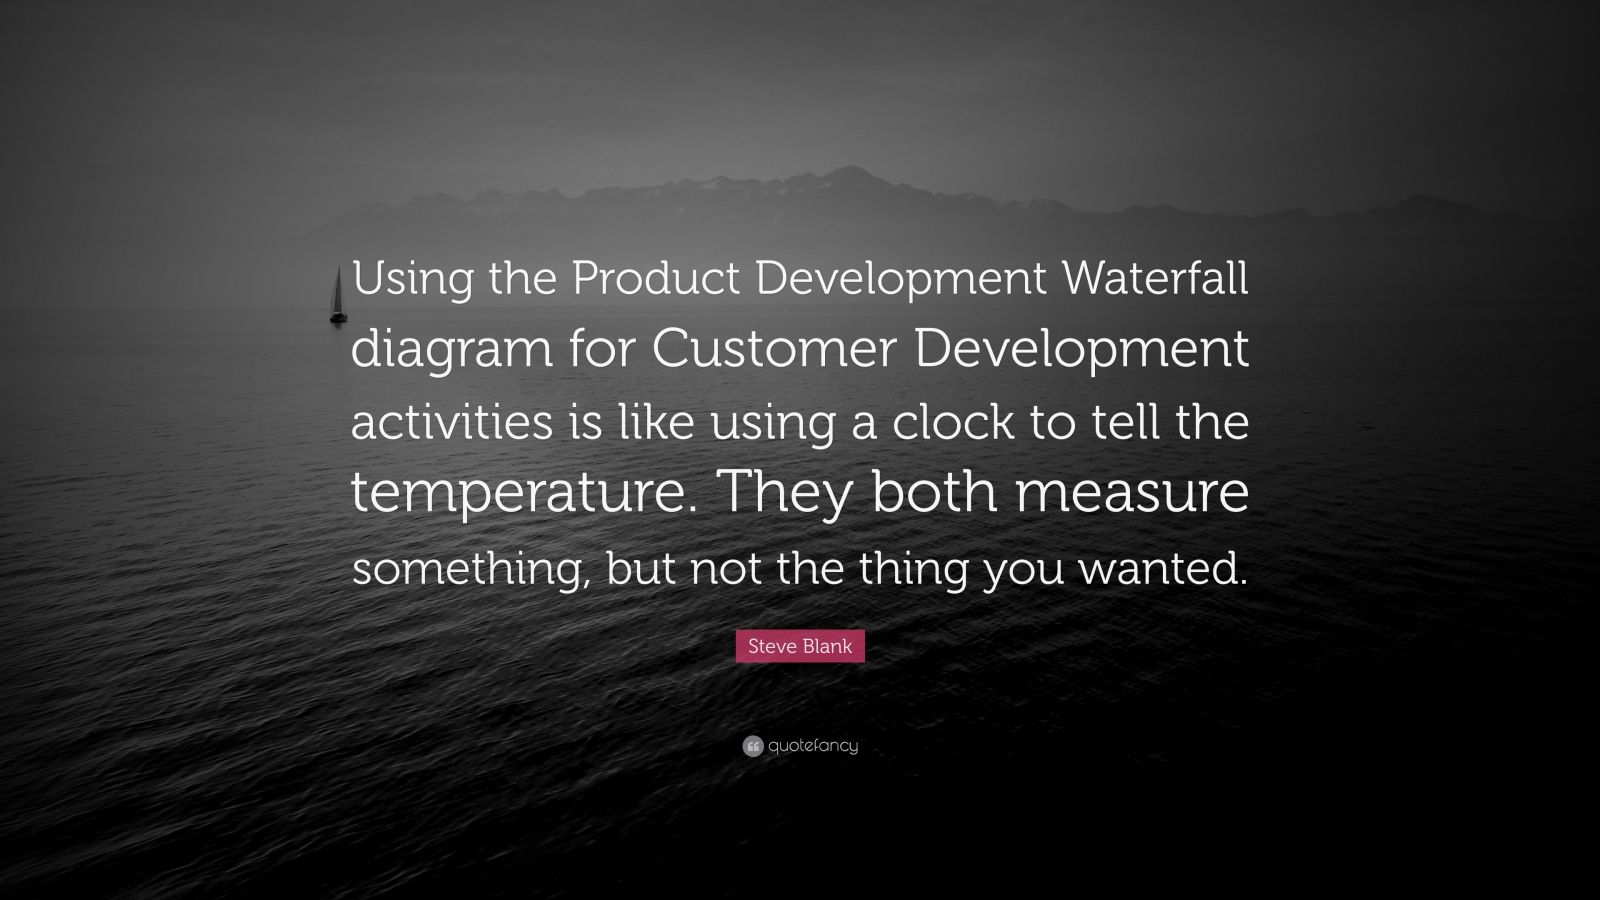 Steve Blank Quote Using The Product Development Waterfall Diagram For Customer Development Activities Is Like Using A Clock To Tell The Te 10 Wallpapers Quotefancy